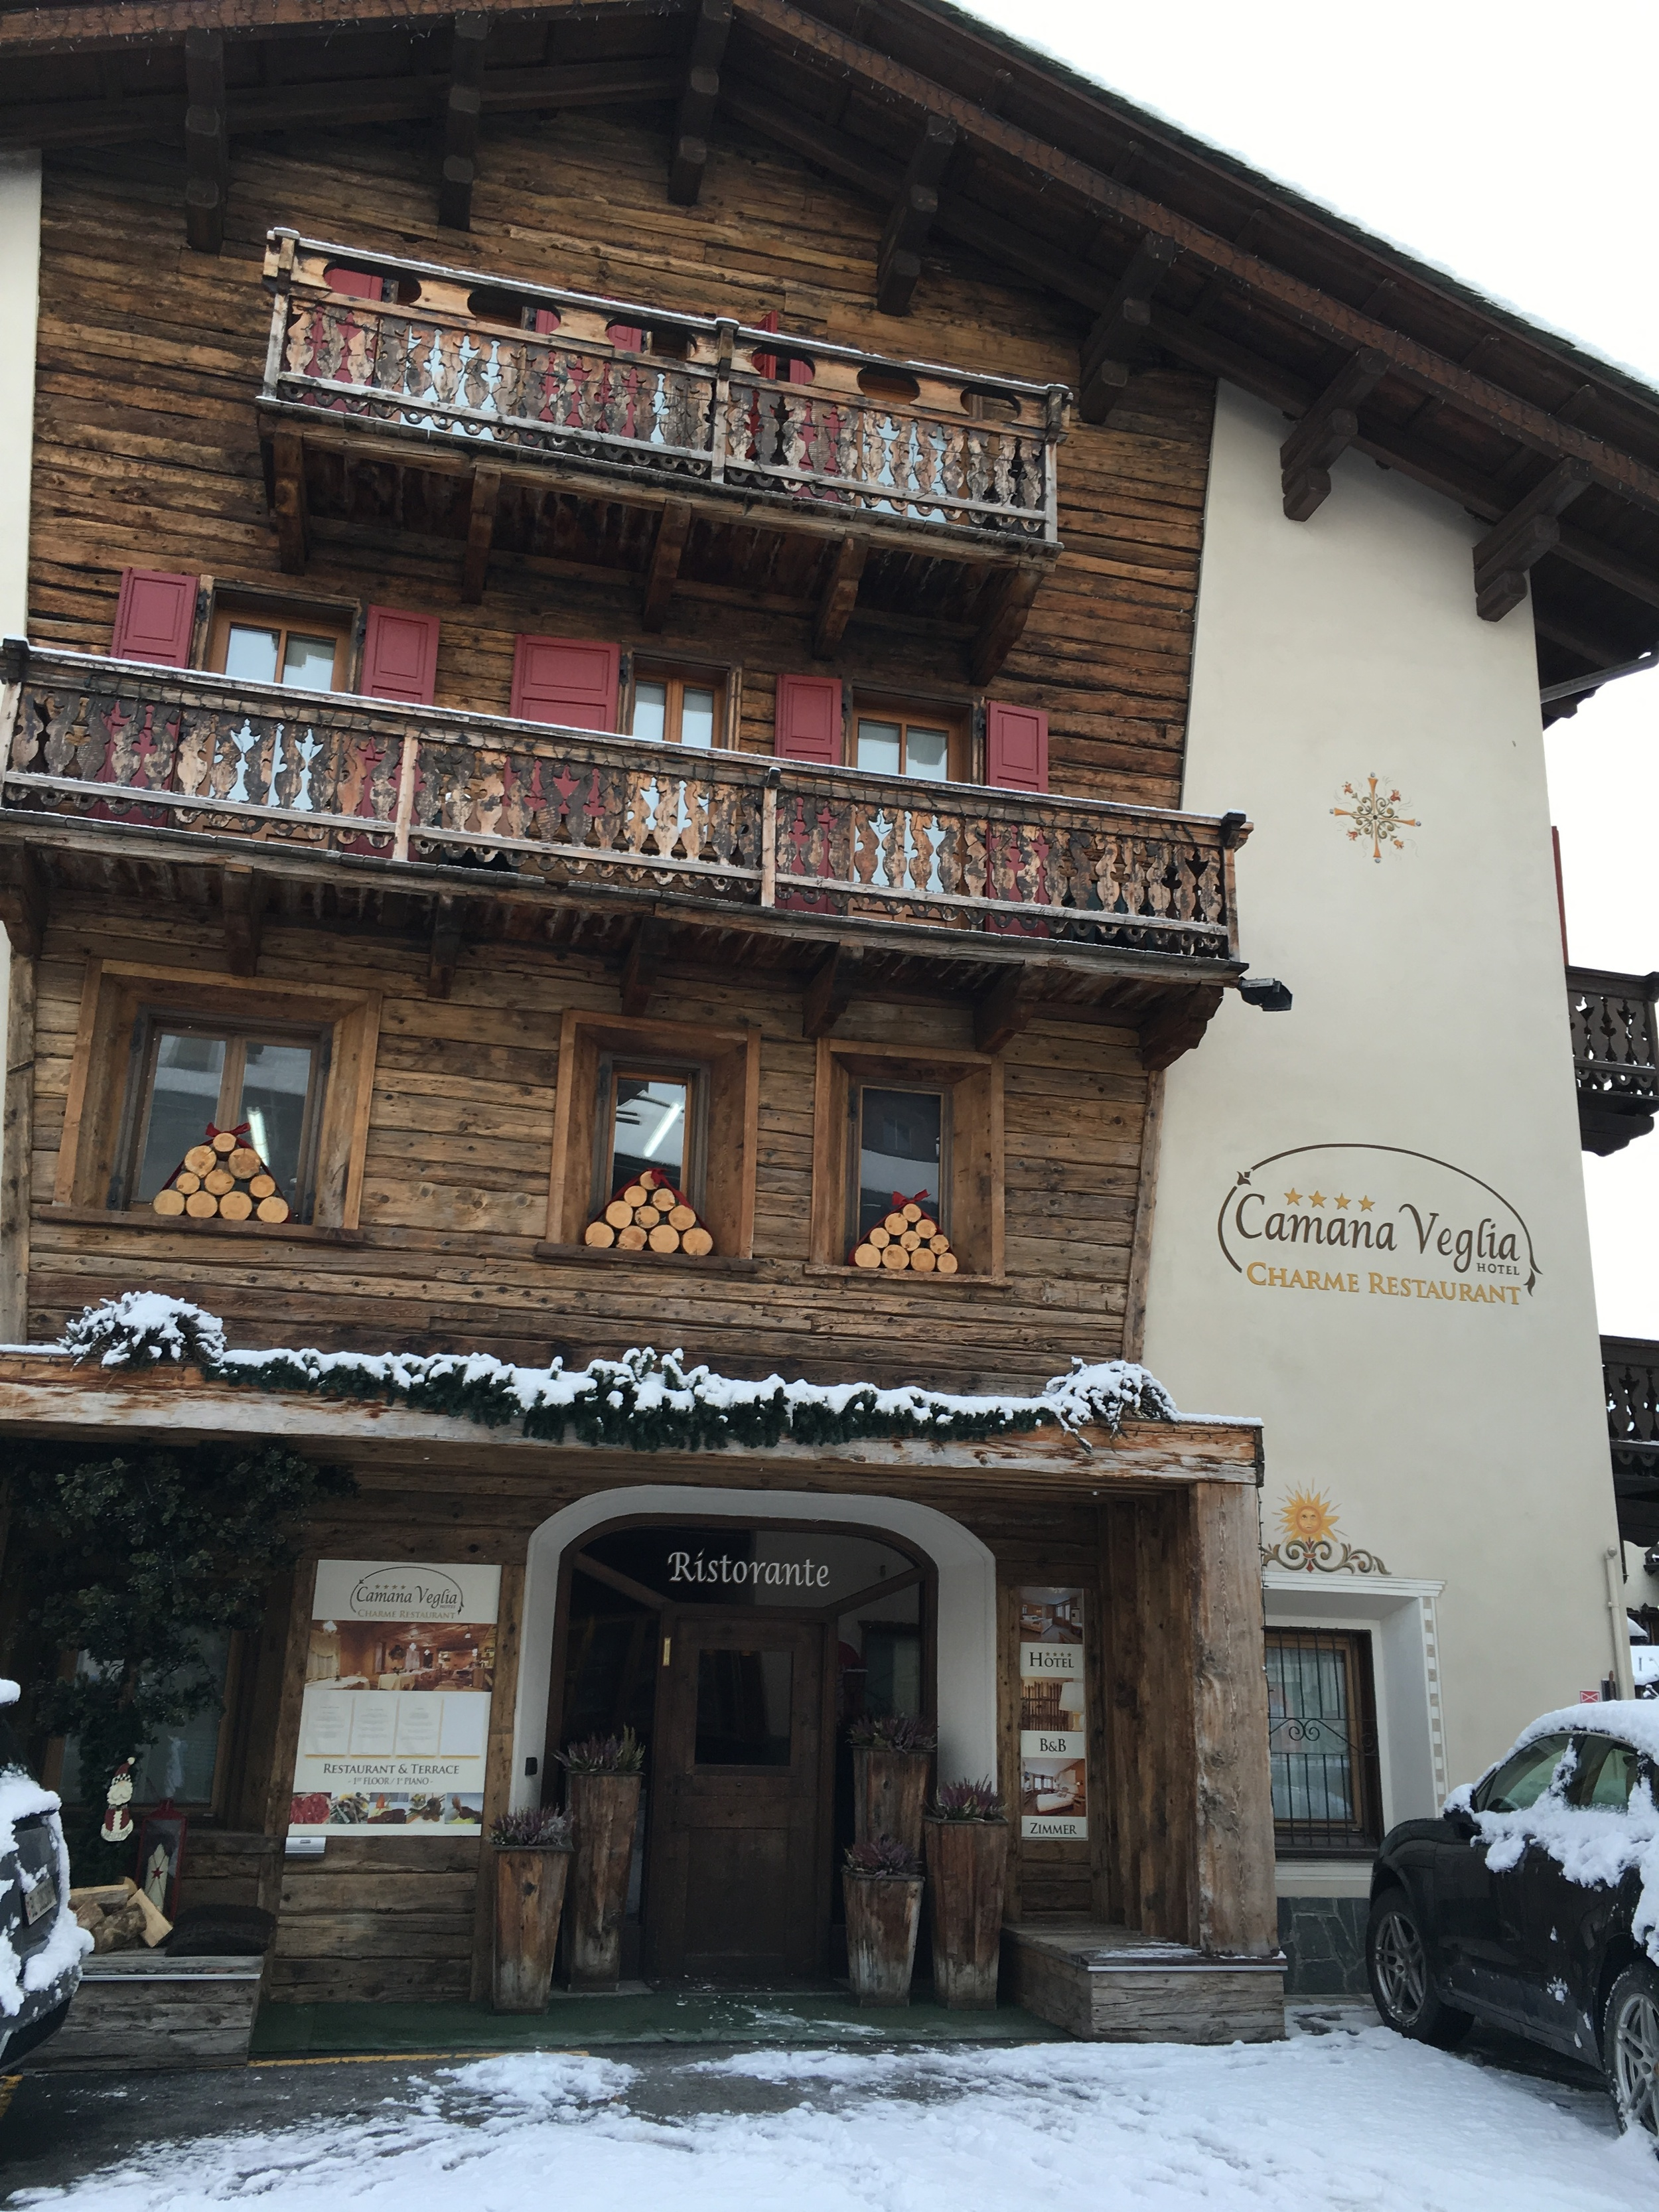 The Hotel we stayed in. Will highly recommend it to anyone planning on visiting Livigno. All the staff was incredibly friendly and gave great advice regarding the slopes and which mountain to ski when.